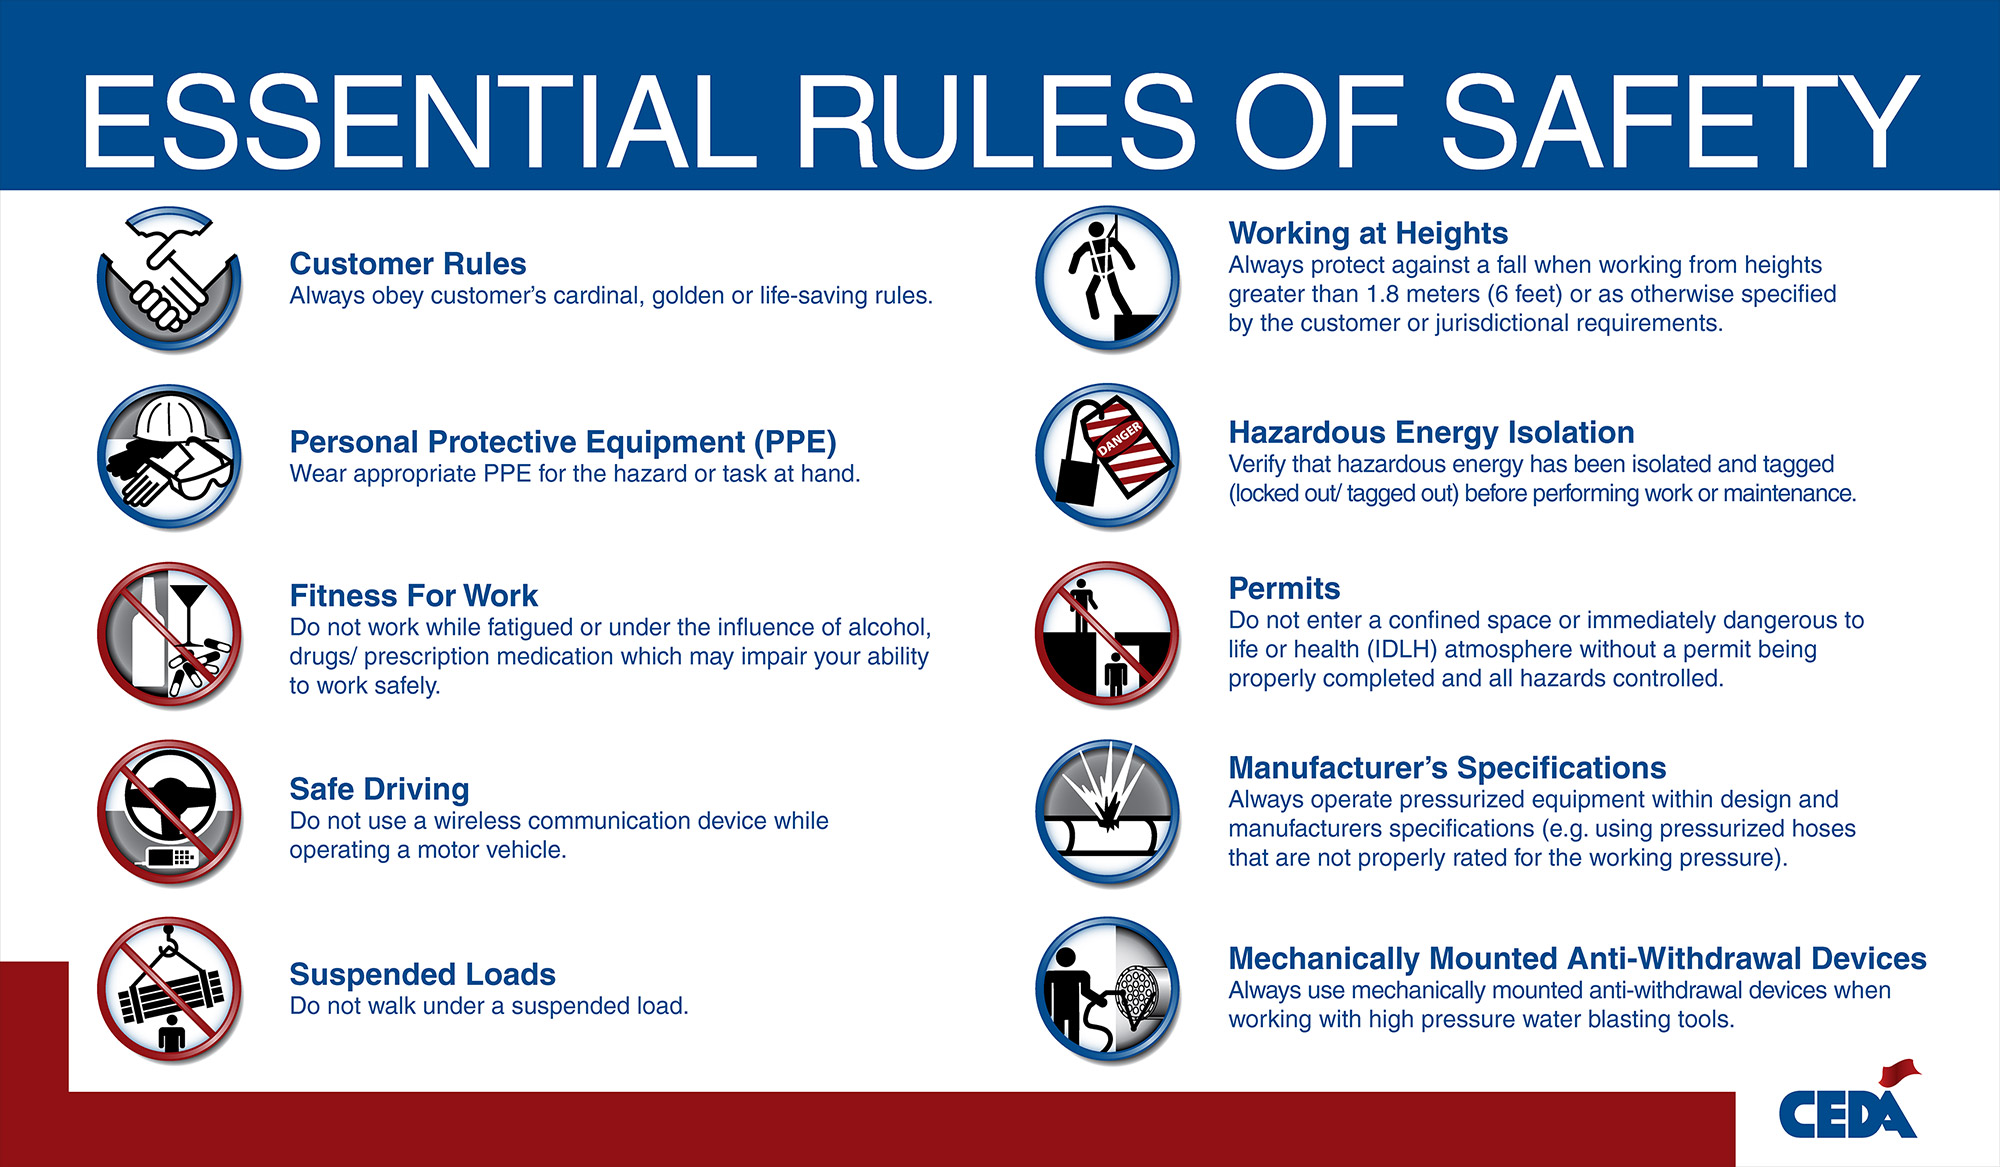 ceda-essential-rules-of-safety.jpg